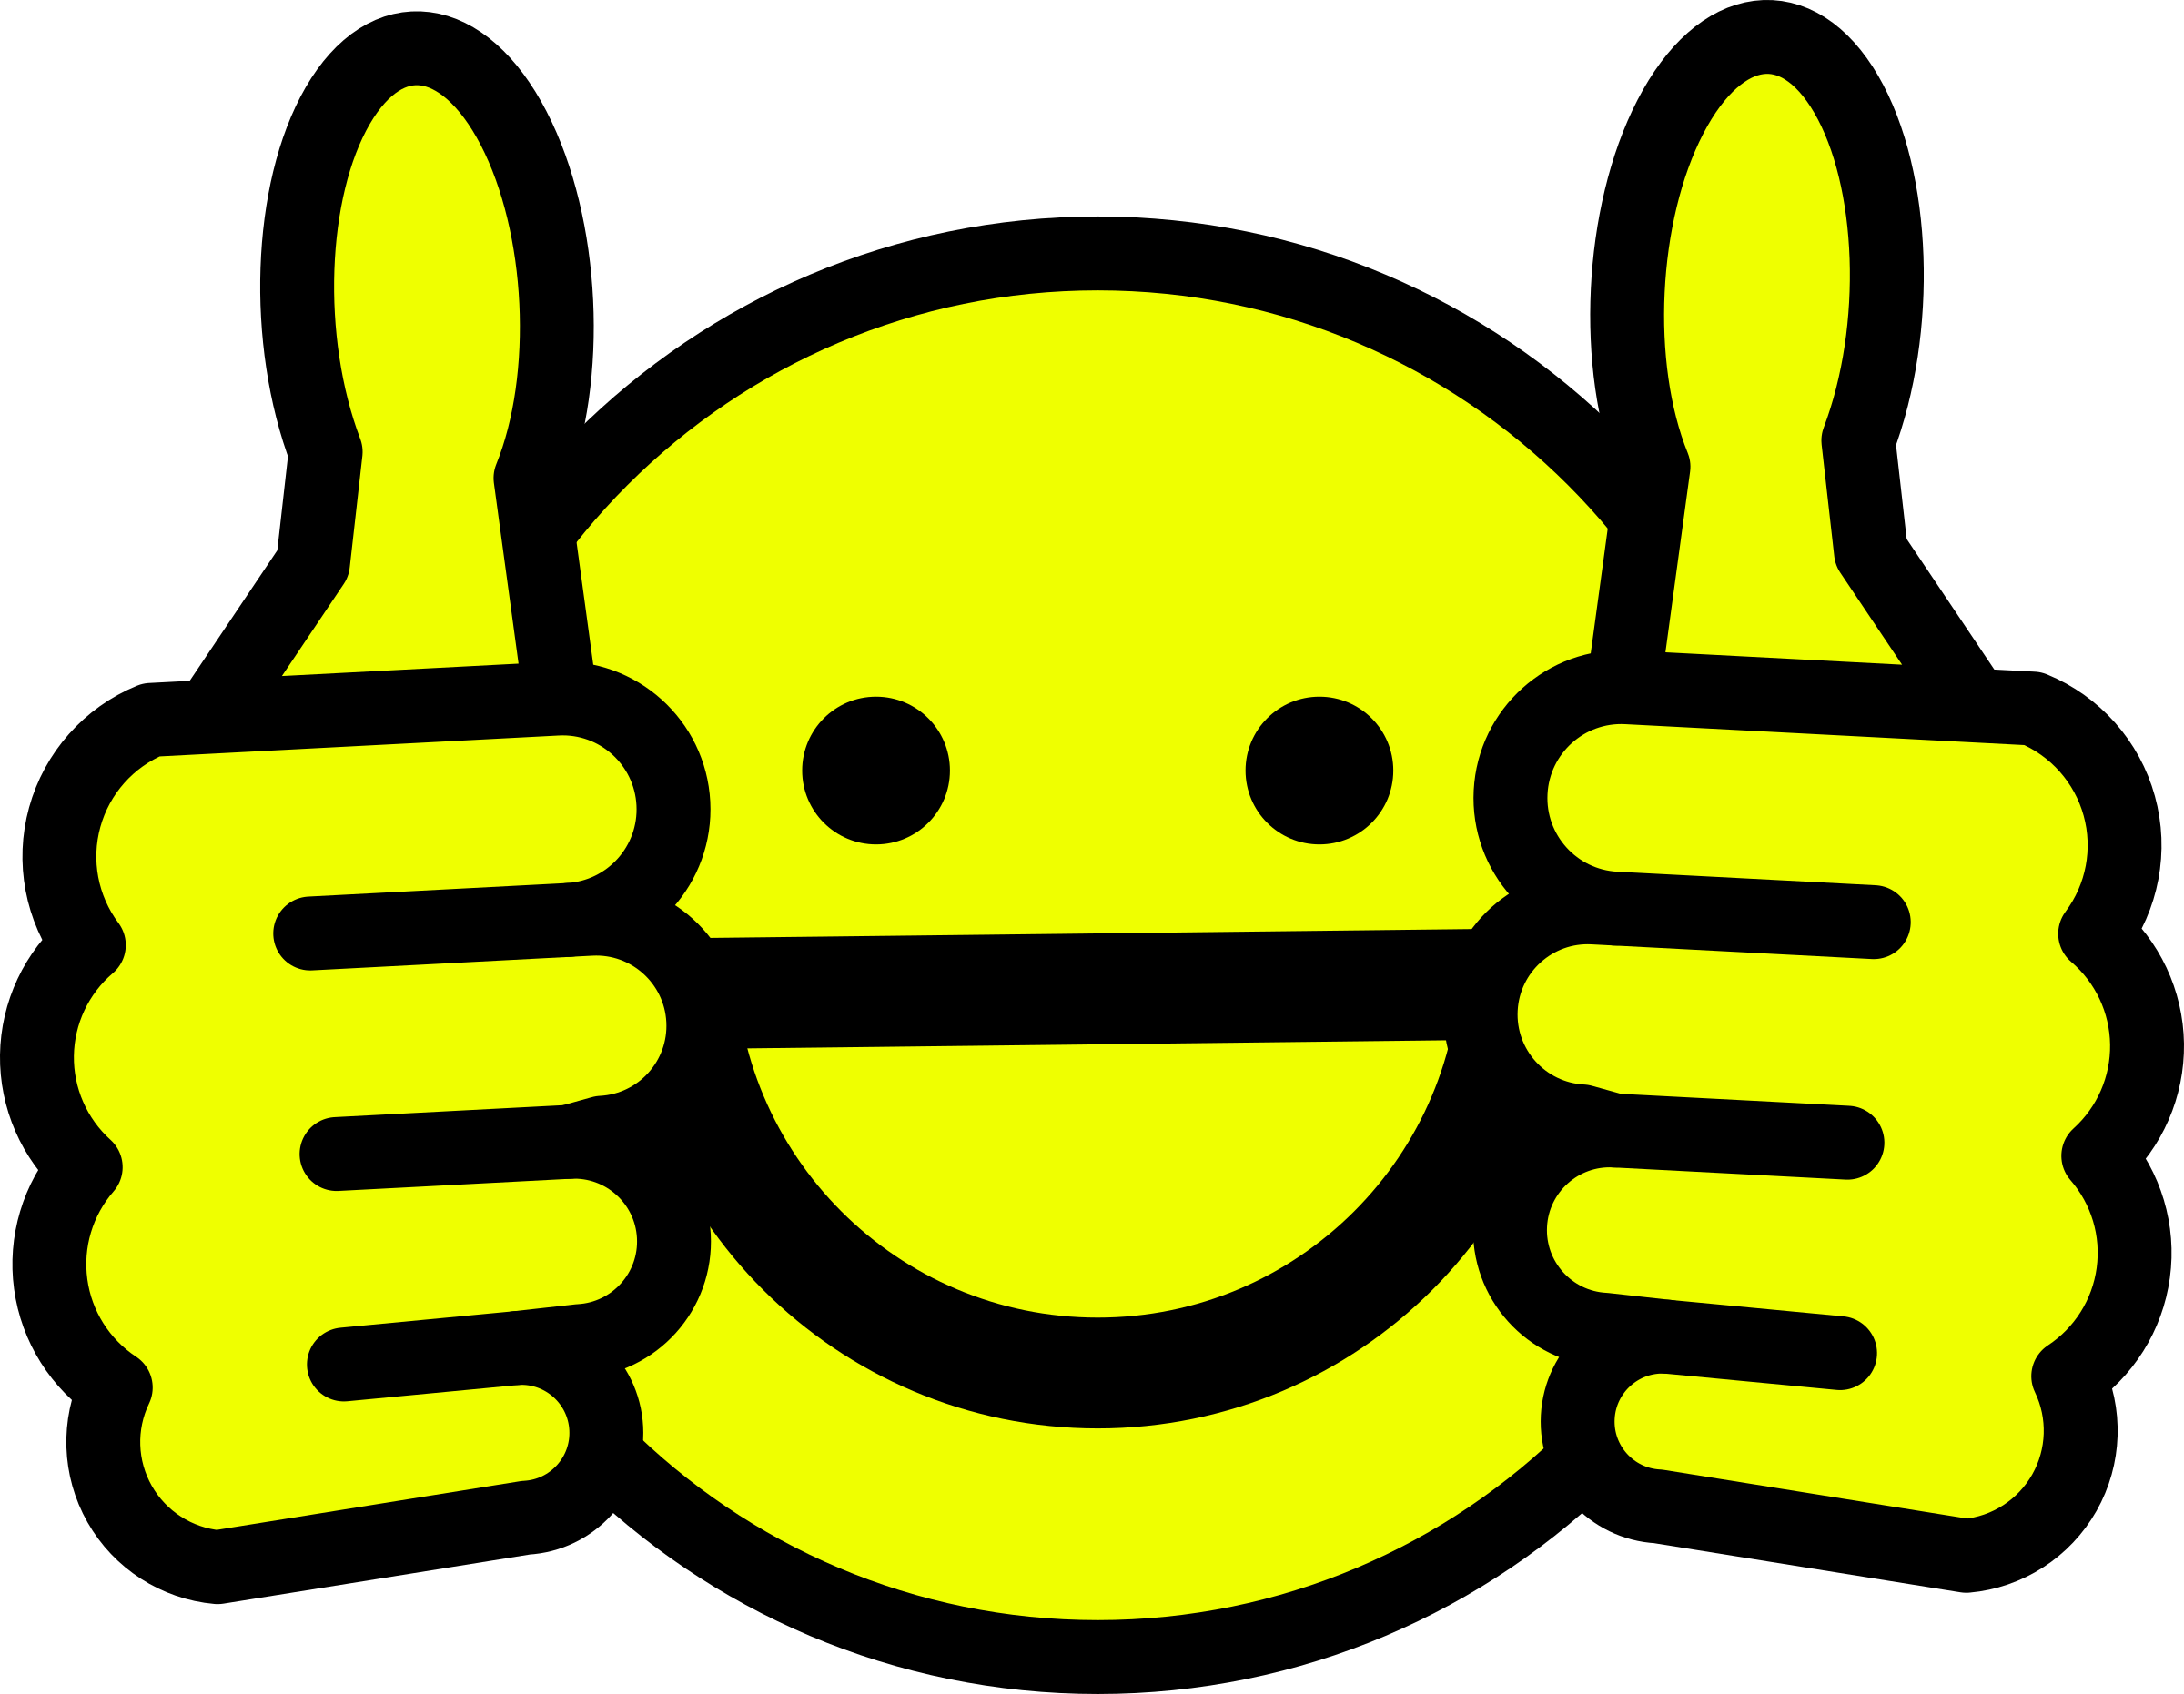 Smiley Face Transparent Background  Free download on